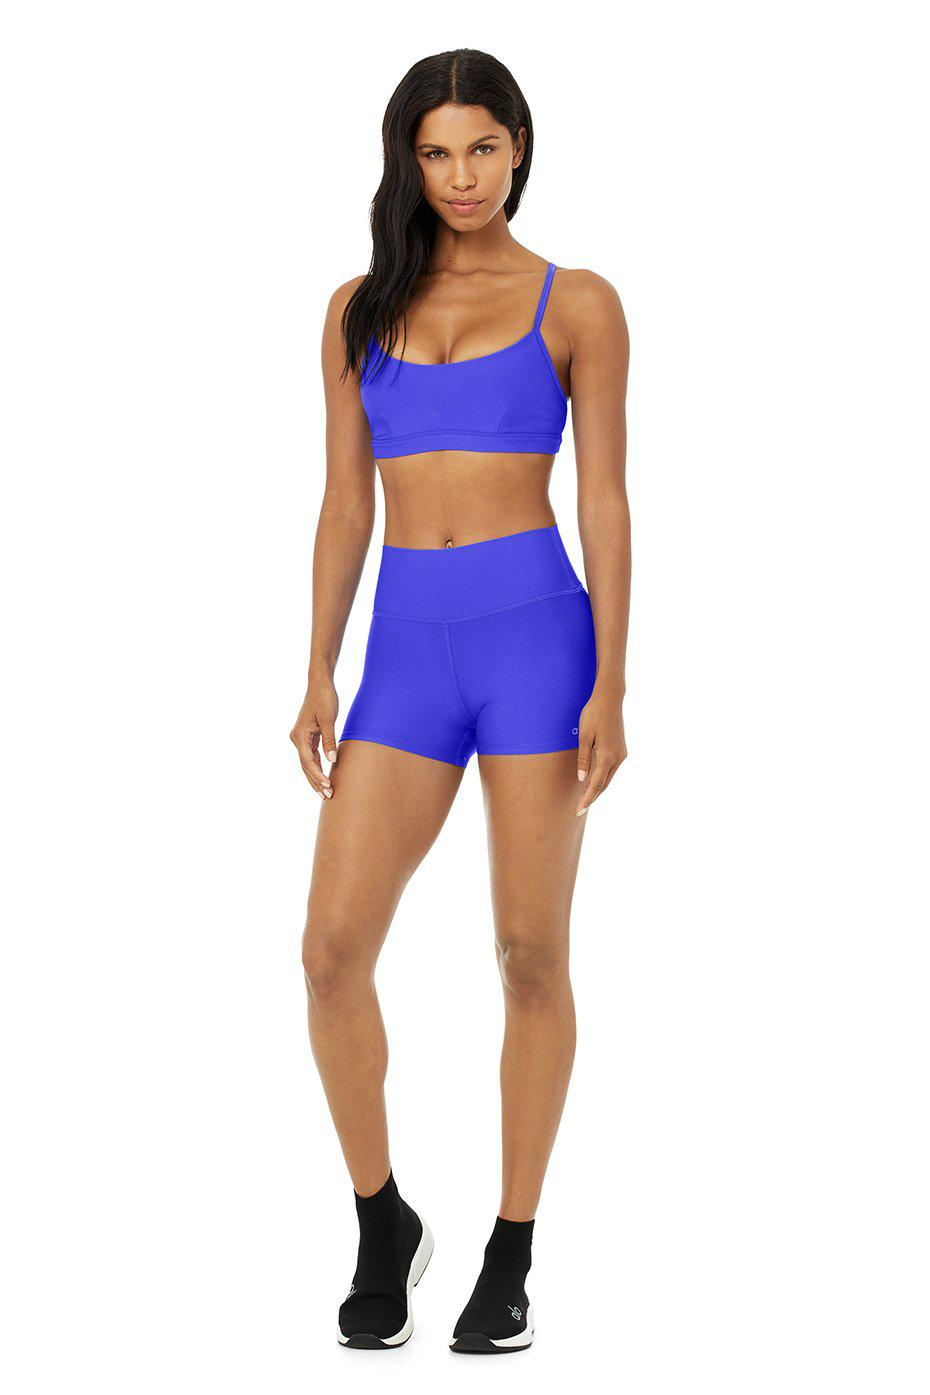 Airlift Intrigue Bra - Alo Blue 4